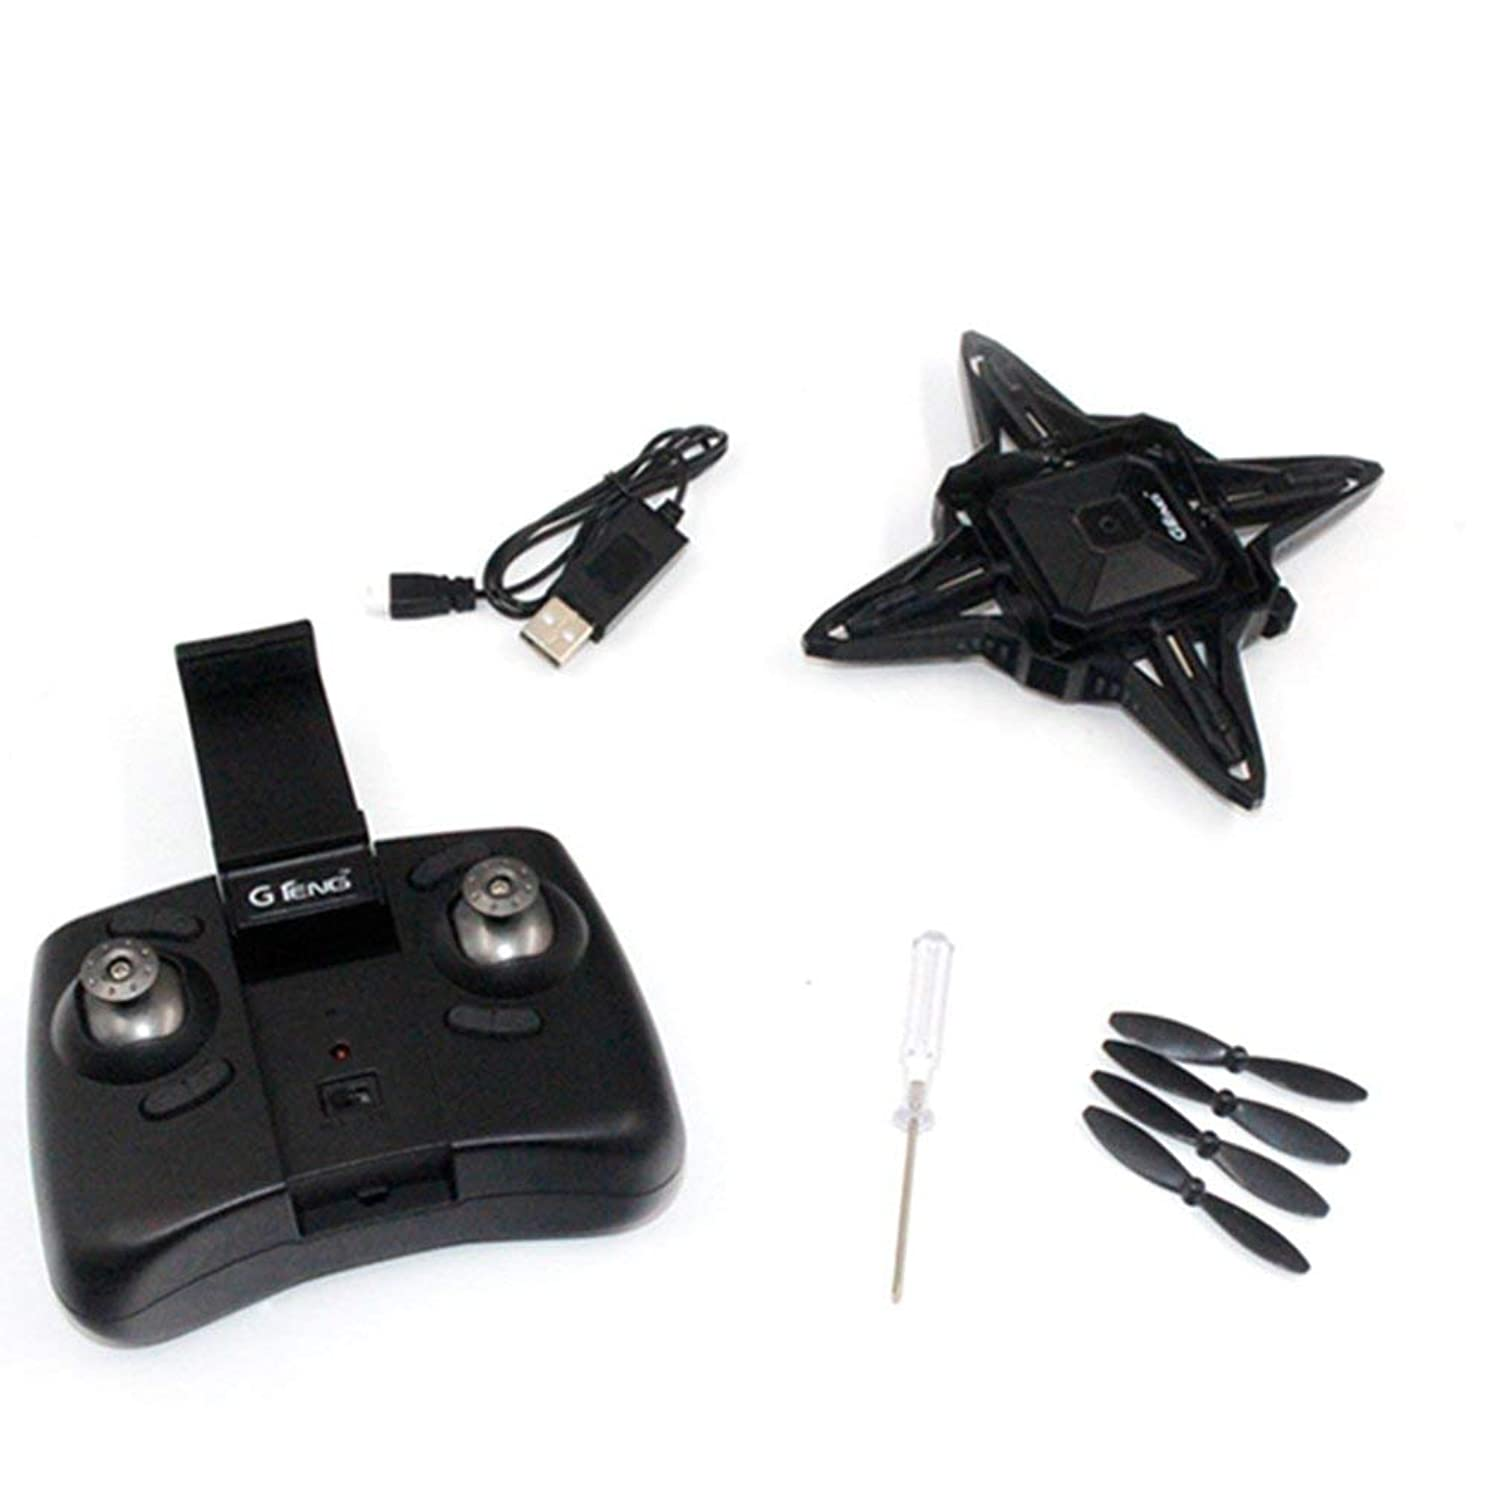 Gteng T911W 2.4G Quadcopter with Altitude Hold Wifi Real-time Transmission Black